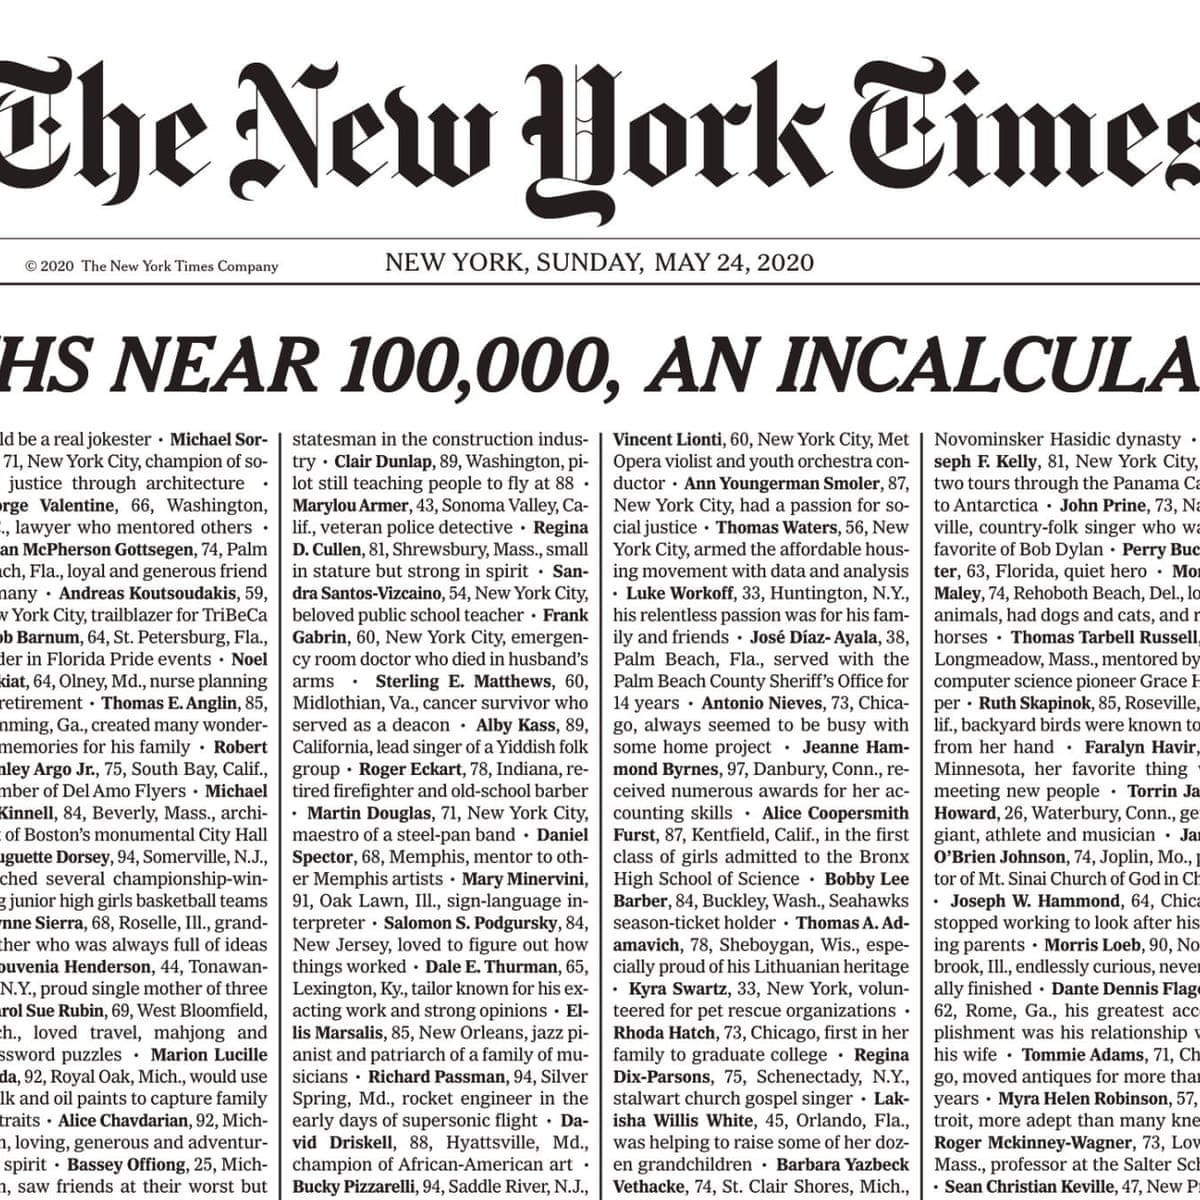 Incalculable Loss New York Times Covers Front Page With 1 000 Covid 19 Death Notices World News The Guardian